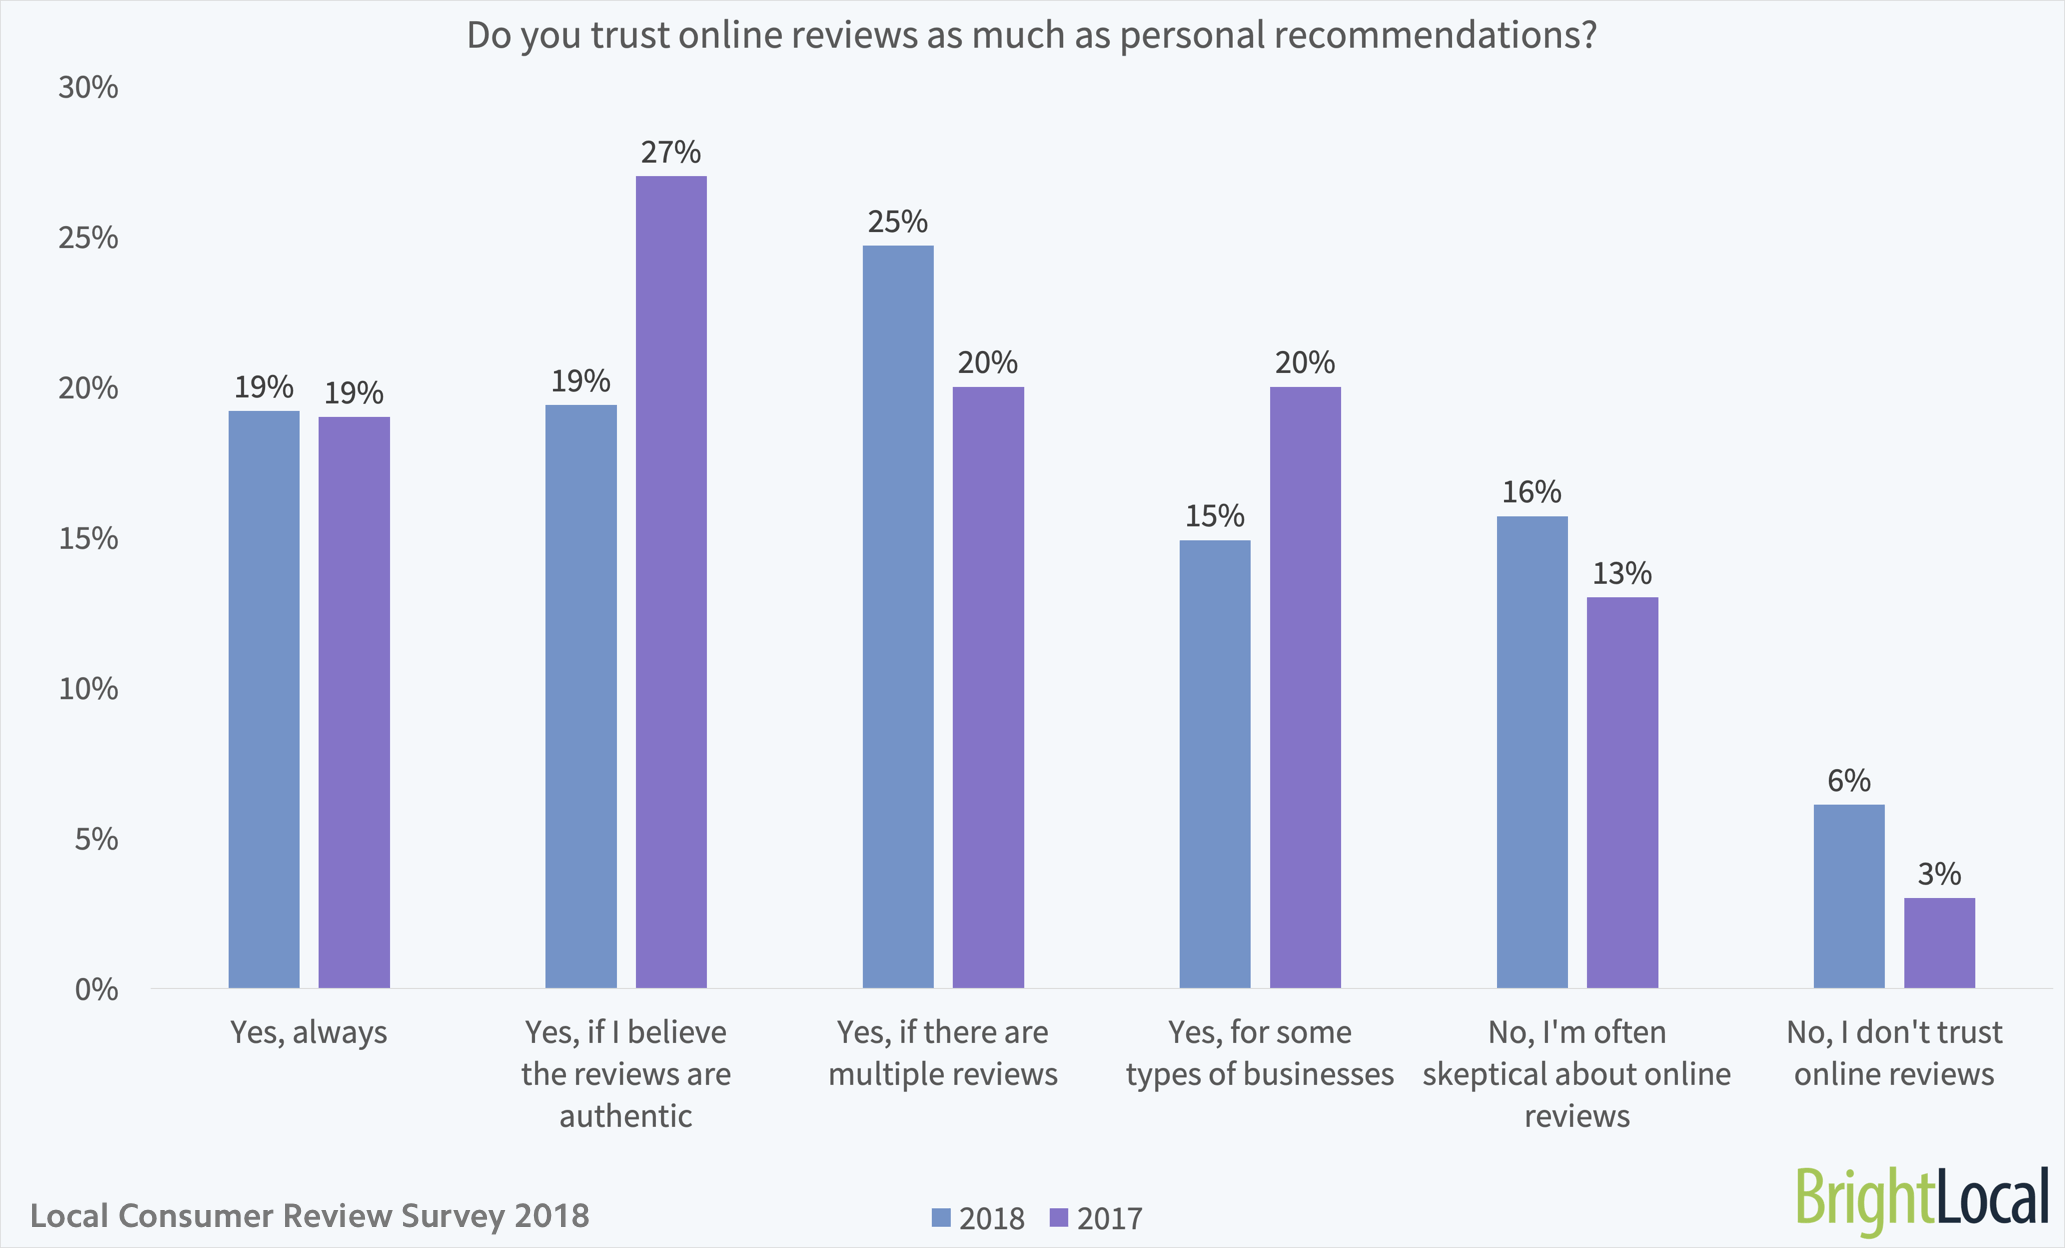 Customers trust online reviews as much as personal recommendations